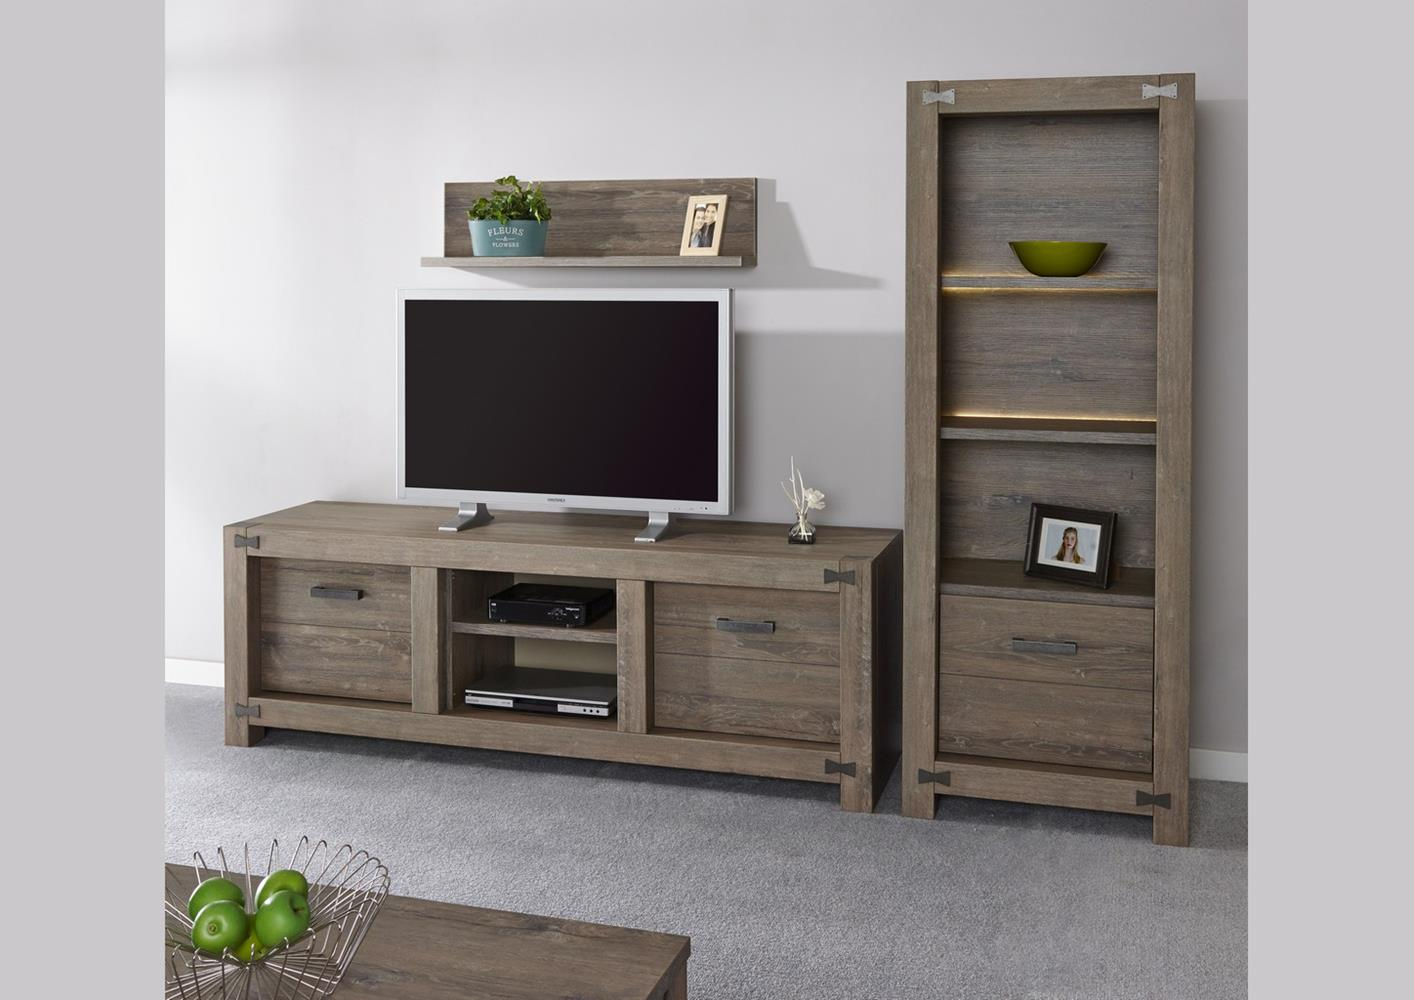 acheter votre meuble tv style exotique 2 portes 1 niche chez simeuble. Black Bedroom Furniture Sets. Home Design Ideas